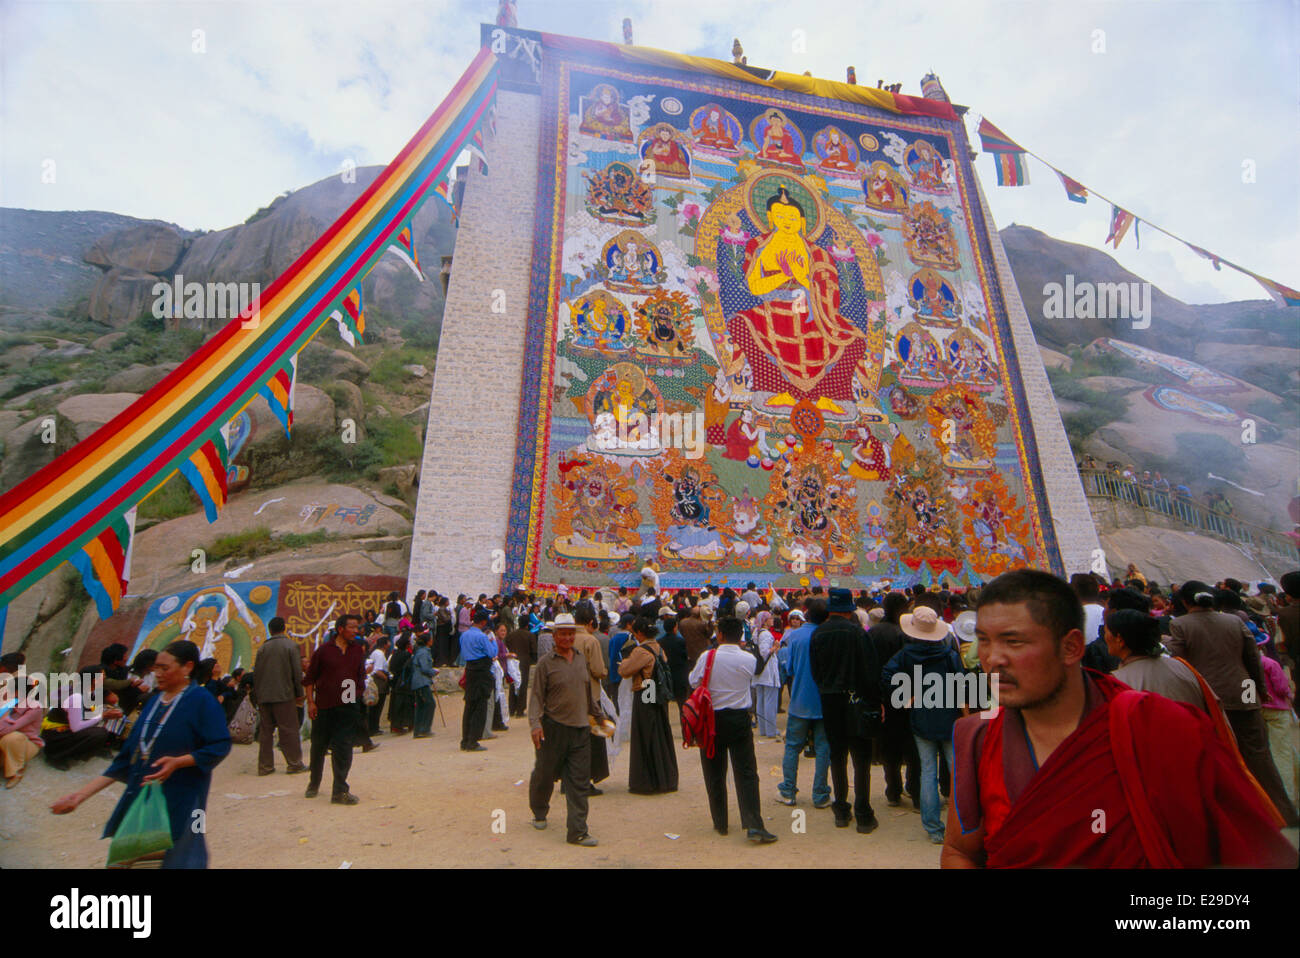 "A Tibetan Monk walks by a giant ""Thangka,"" a painted or embroidered Buddhist banner at Sera Monastery, Lhasa, Tibet Stock Photo"